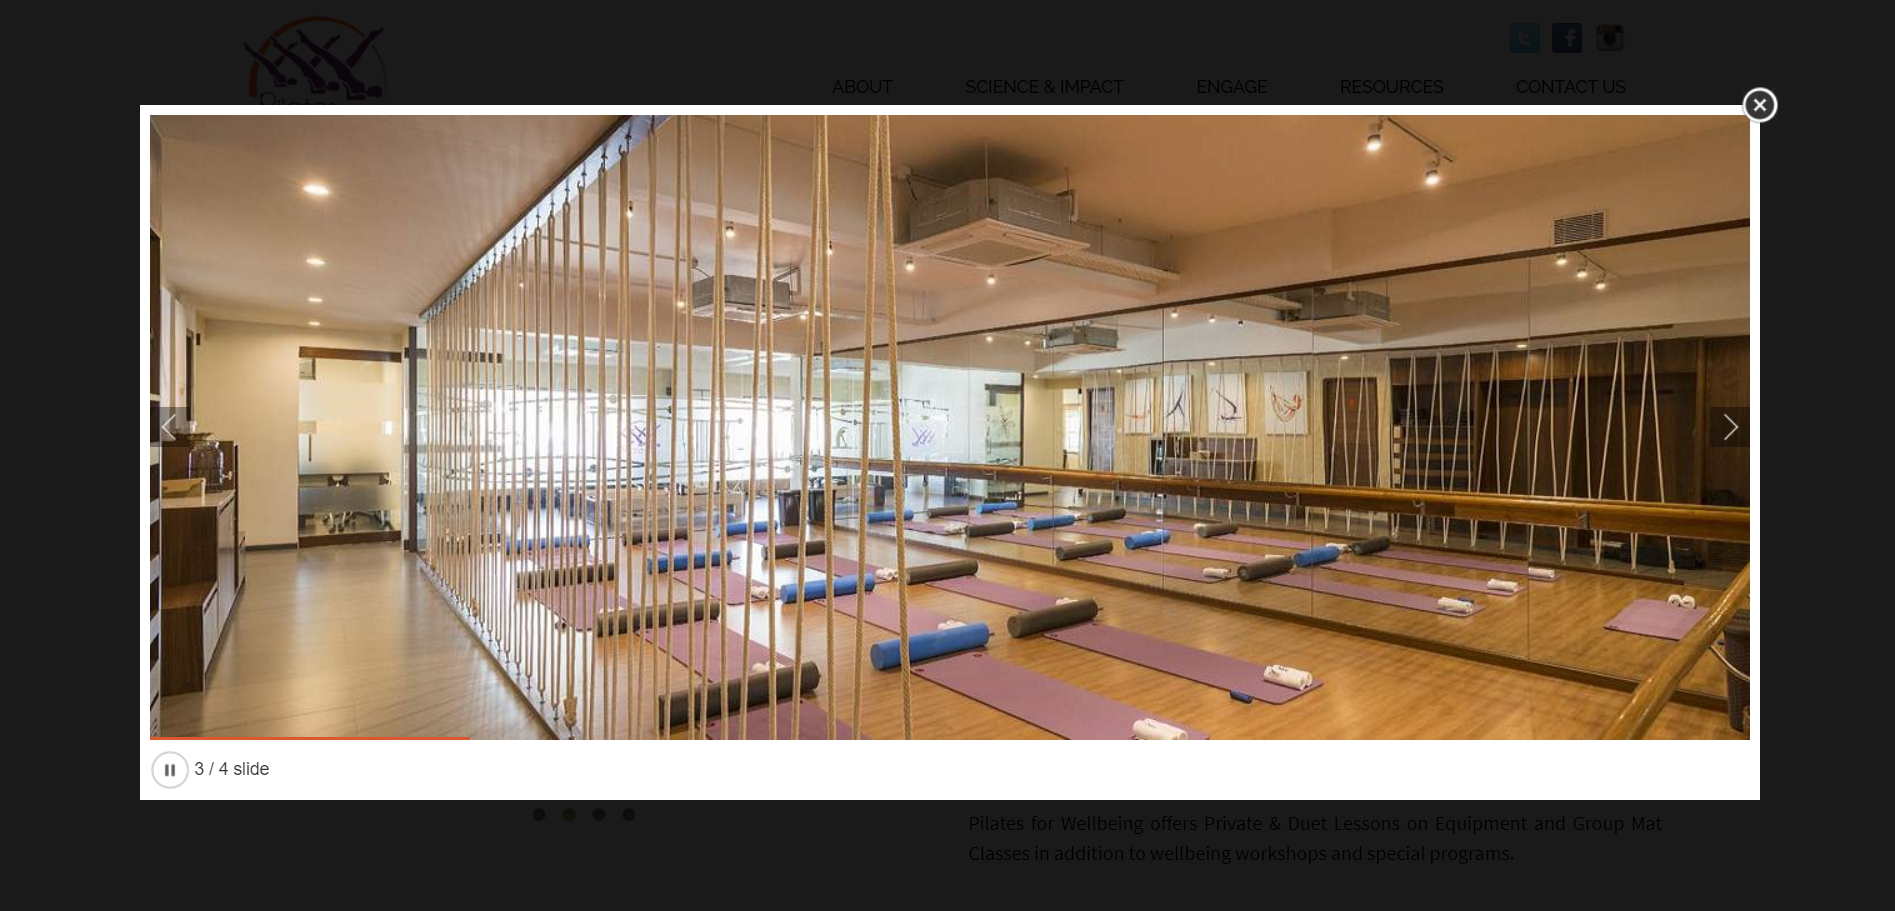 Infrastructure example of a gym